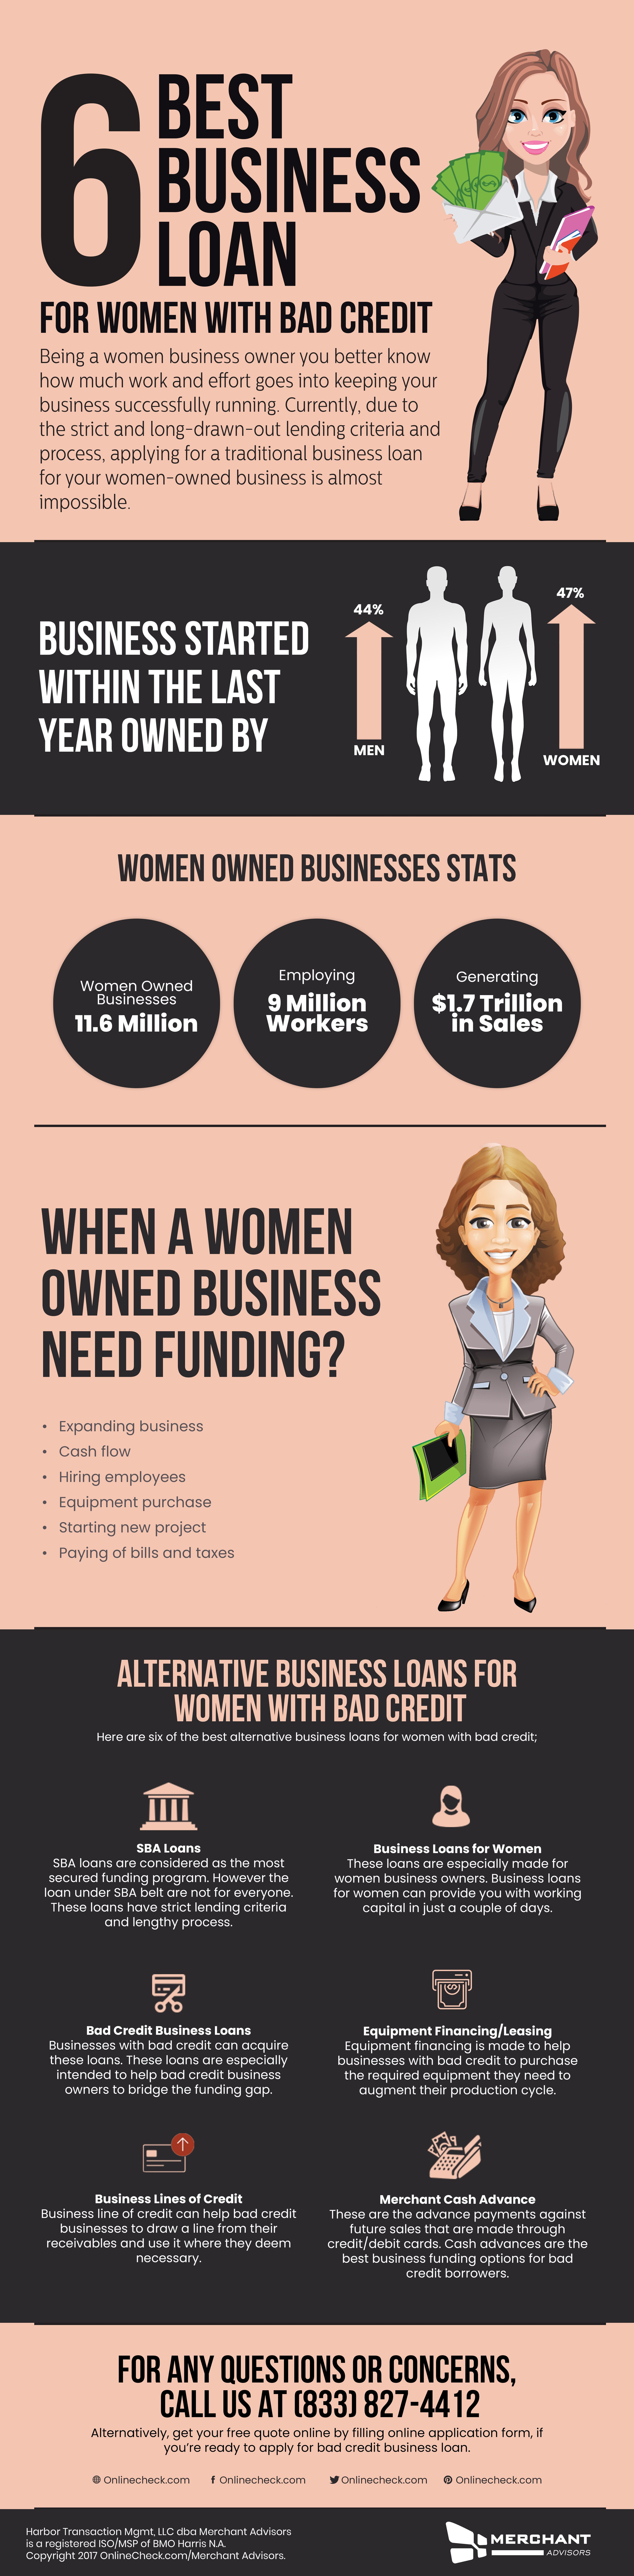 Best Business Loans With Bad Credit For Women Business Loans Small Business Loans Bad Credit